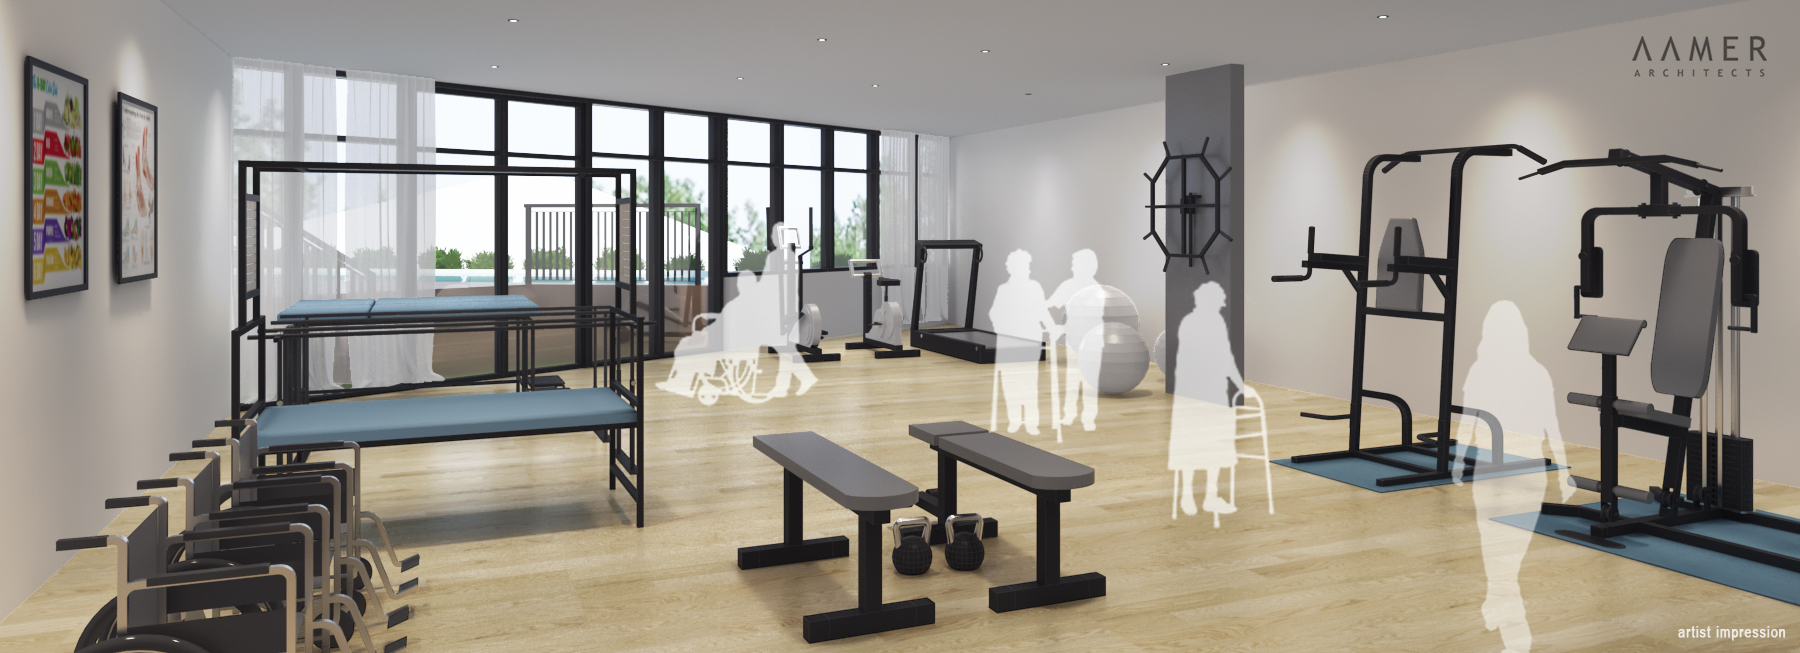 physiotherapy_lounge